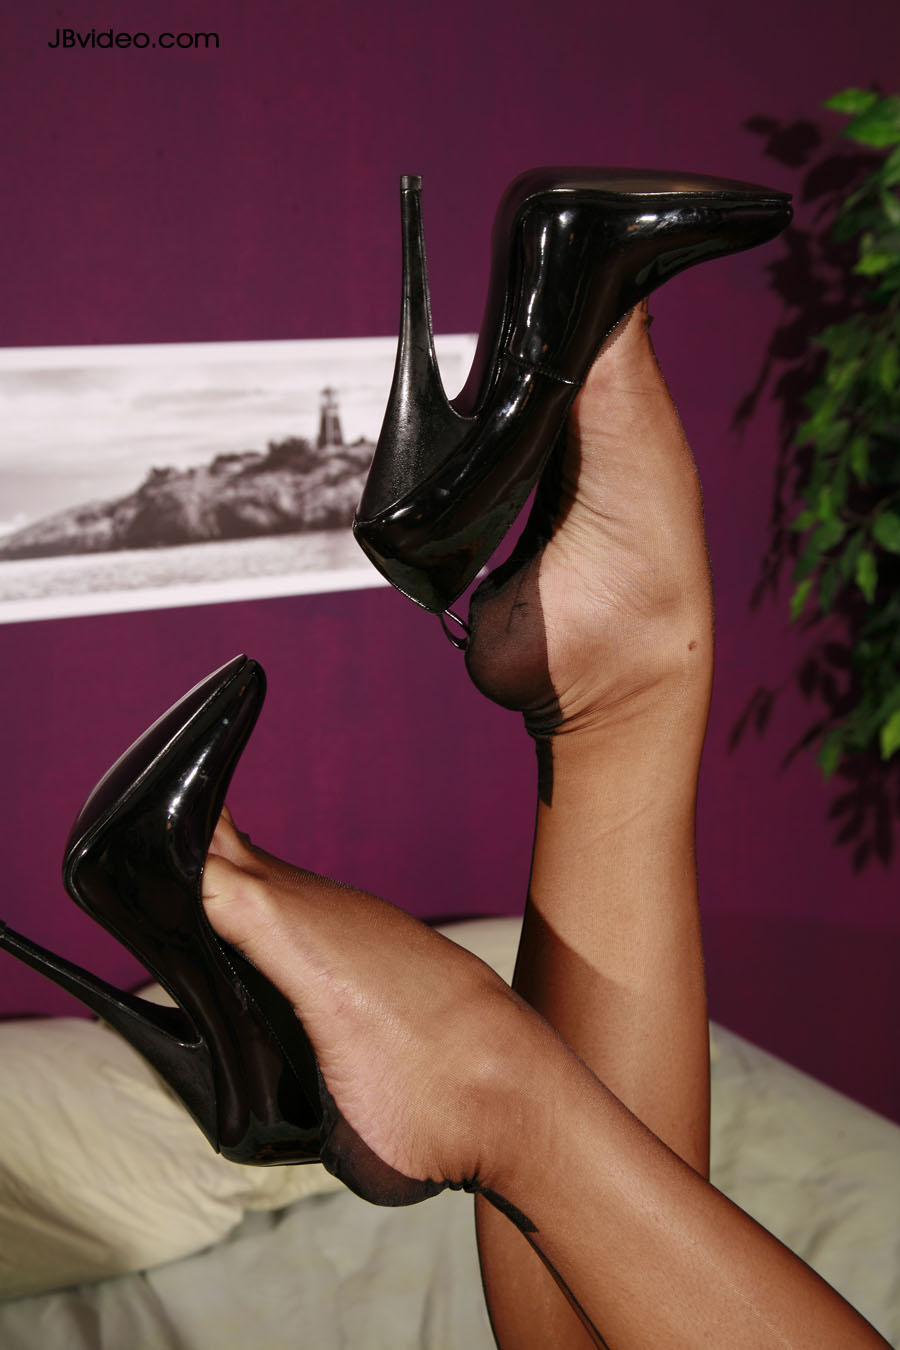 Fetish foot foot movie nylons sorry, does